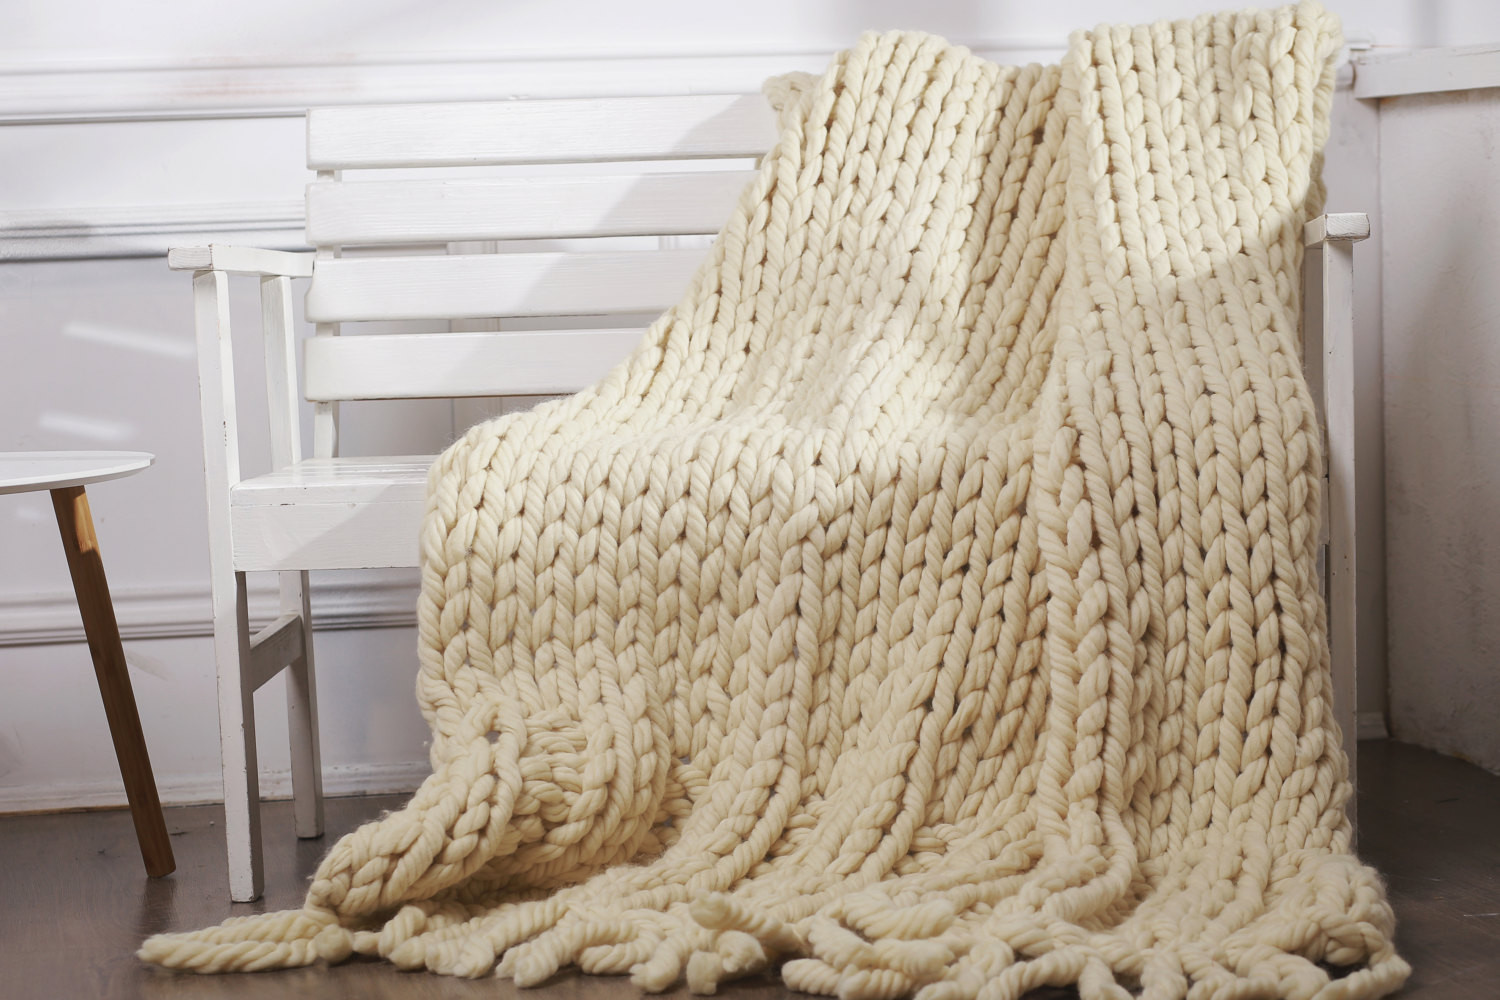 Inspirational Chunky Knit Blanket Super Bulky Blanket Chunky by Fat Yarn Blanket Of Adorable 40 Pics Fat Yarn Blanket